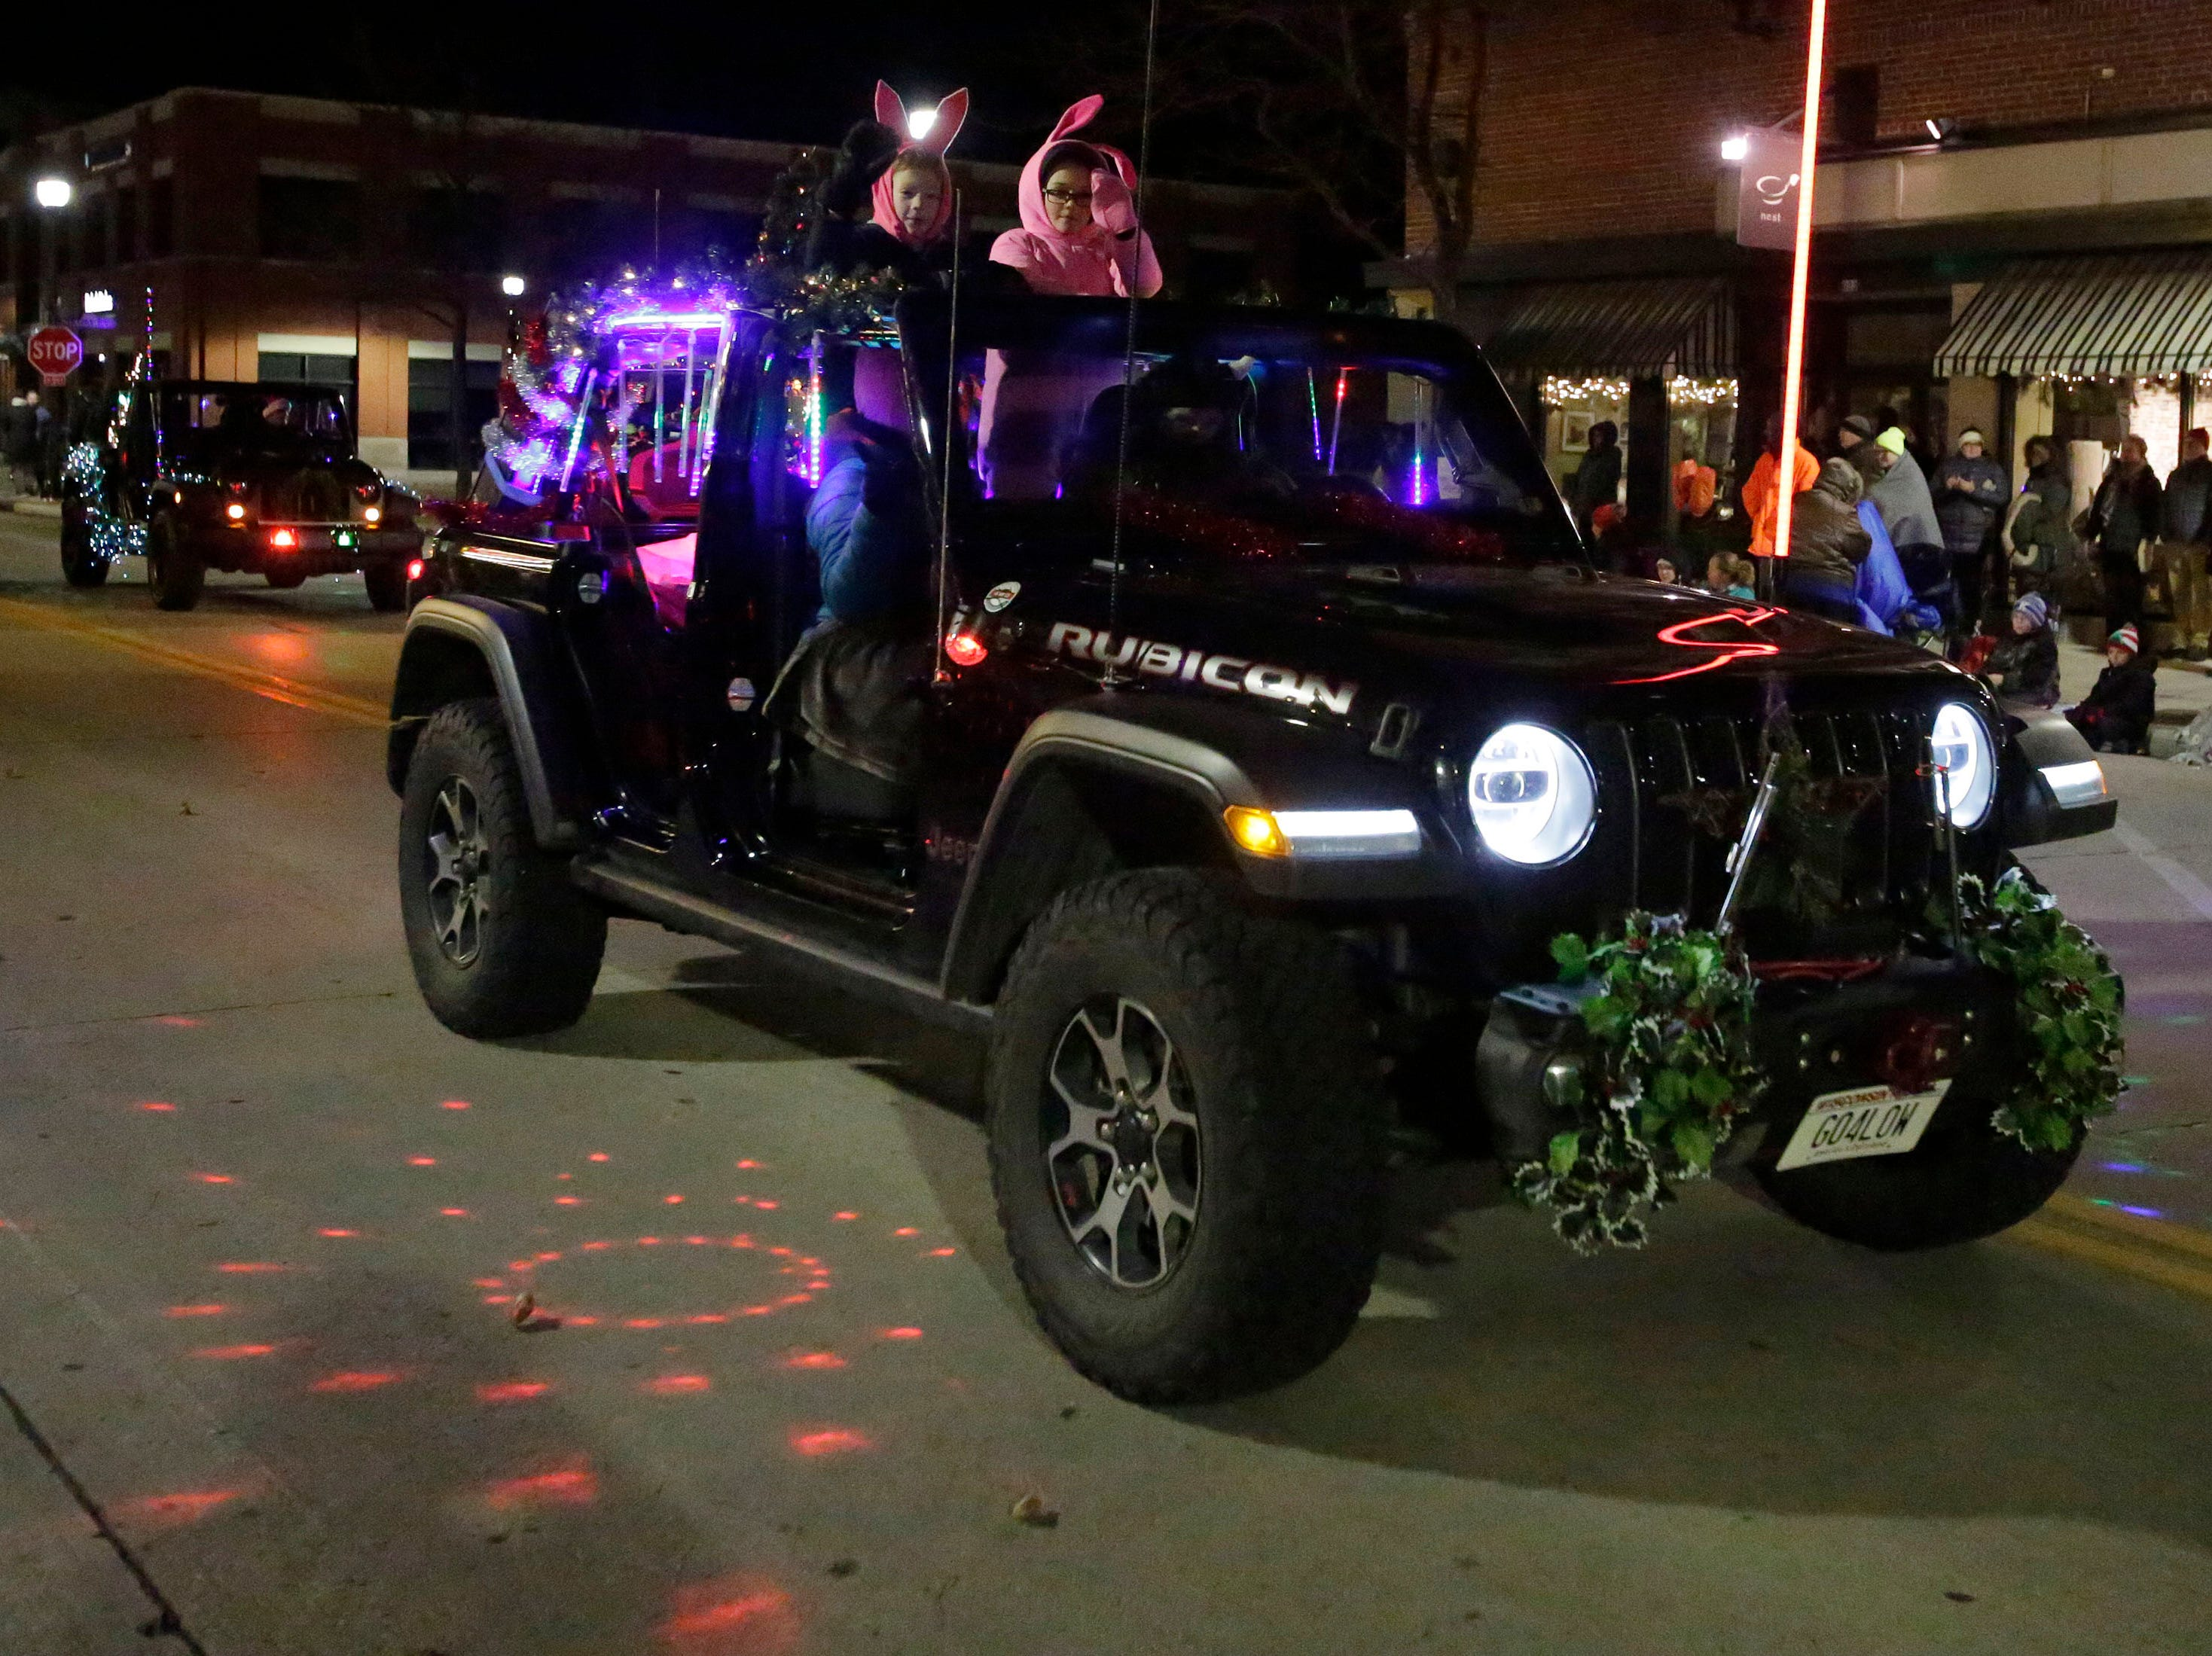 A Jeep lights the way at the 26th Annual Jaycees Holiday Parade, Sunday, November 25, 2018 in Sheboygan, Wis.